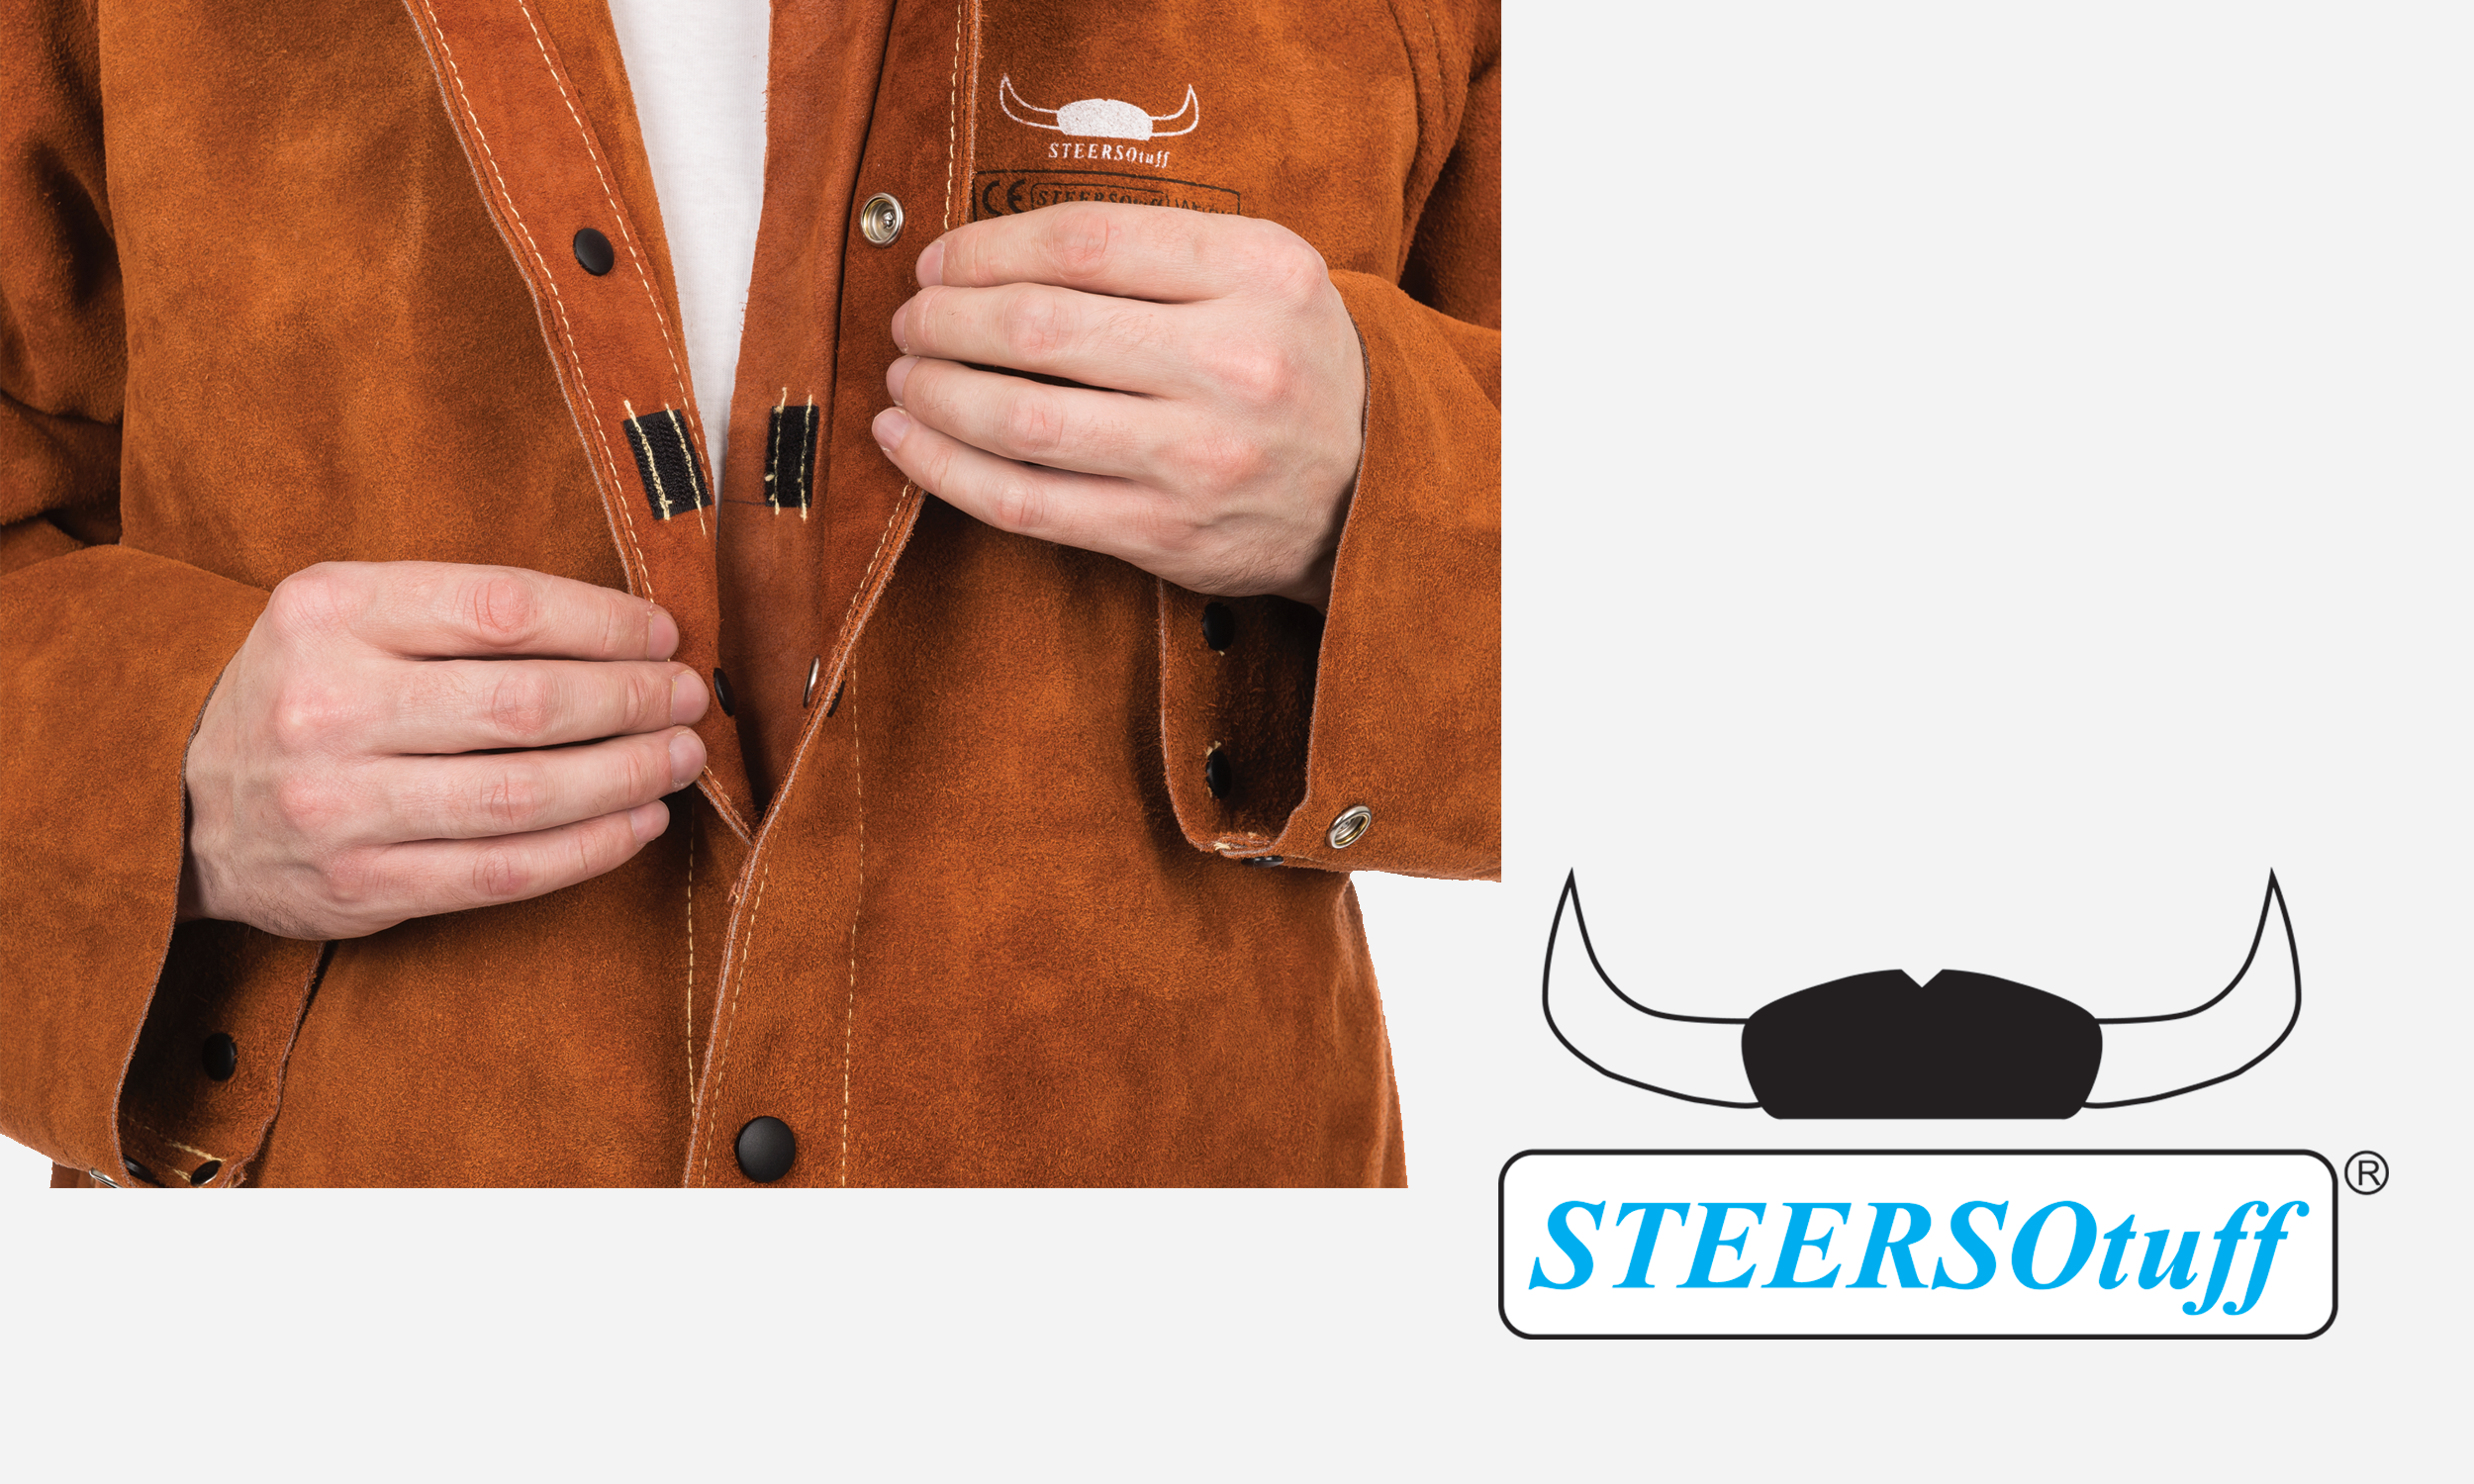 44-7300 STEERSOtuff Leather Jacket Spatter Guard.png